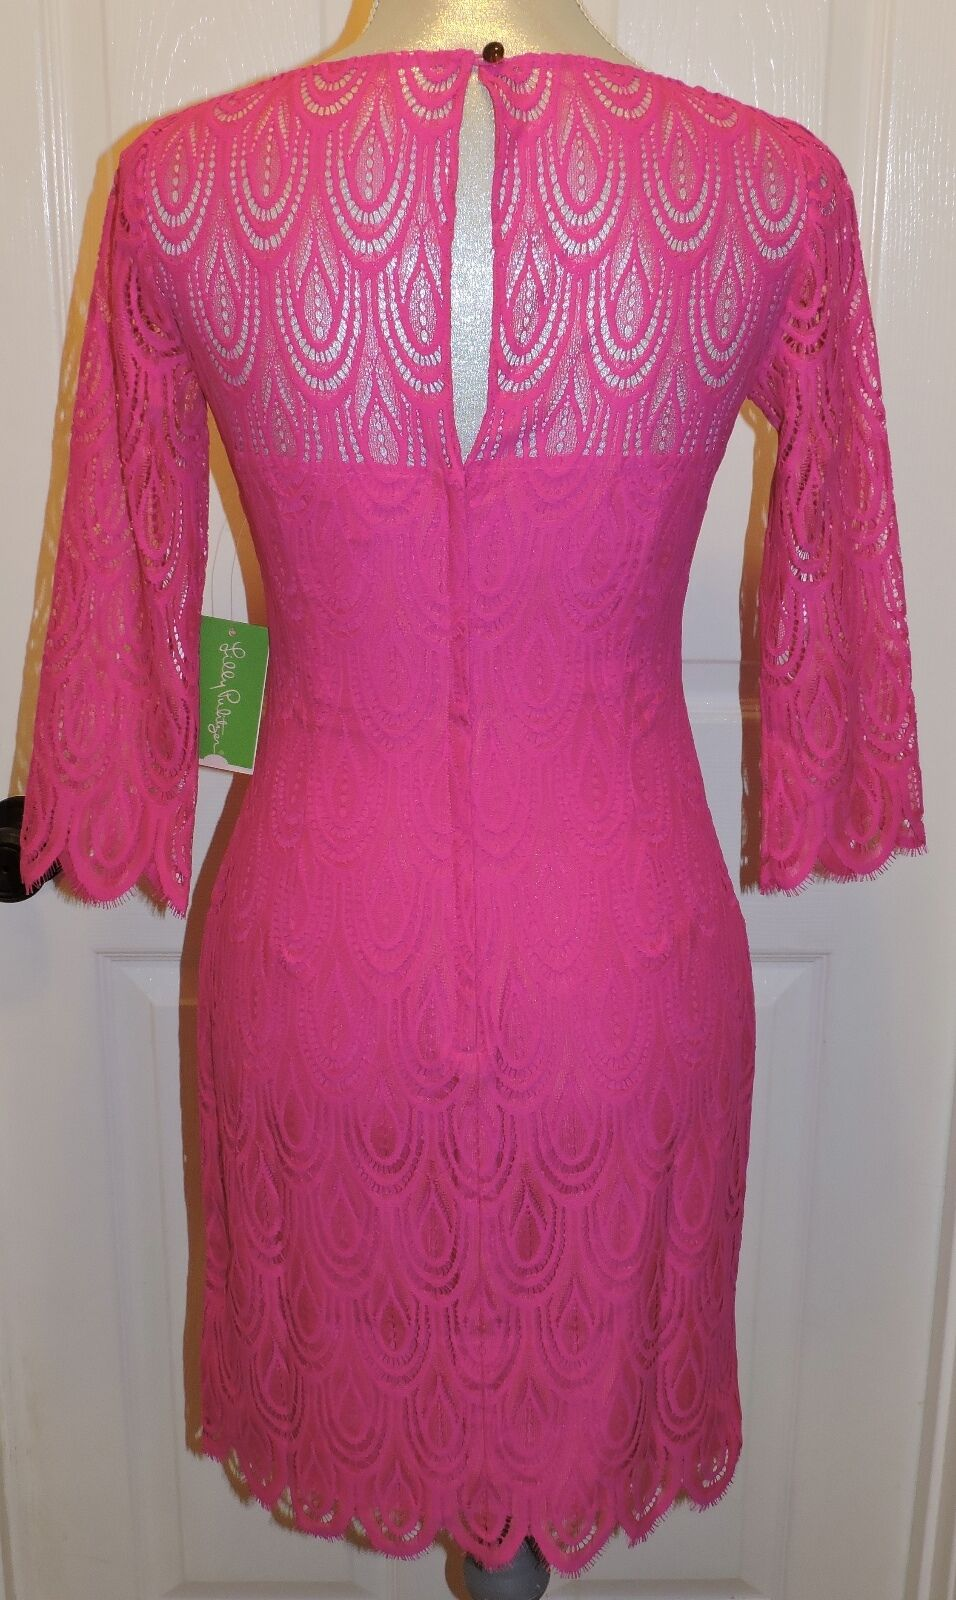 NWT LILLY PULITZER SZ 0 HERA TWO TONE TONE TONE FEATHERED LACE MAGENTA b47cc1